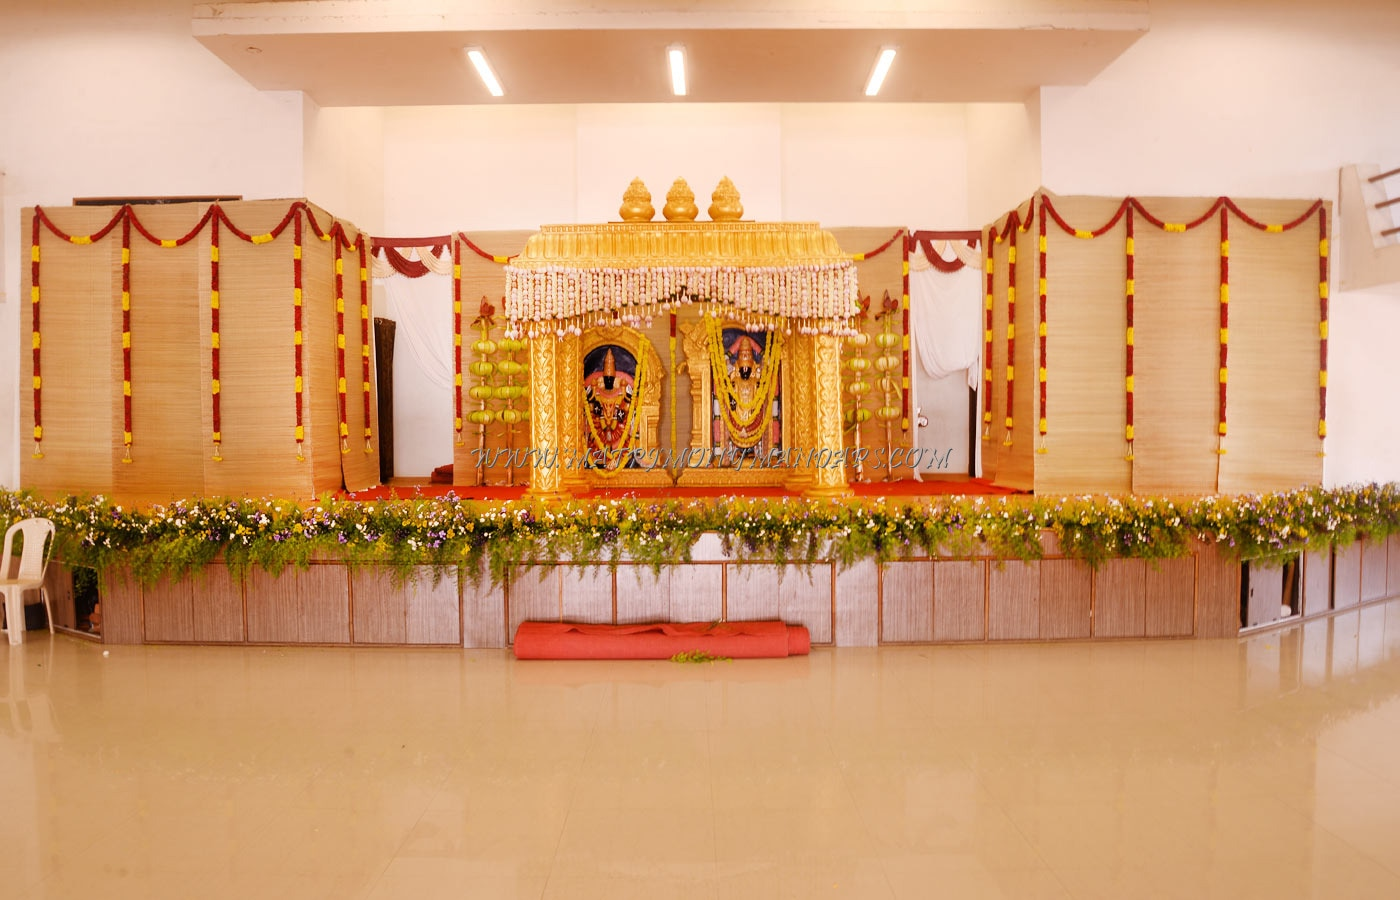 Find the availability of the Sri Radhakrishna Mandapam in ECR, Chennai and avail special offers